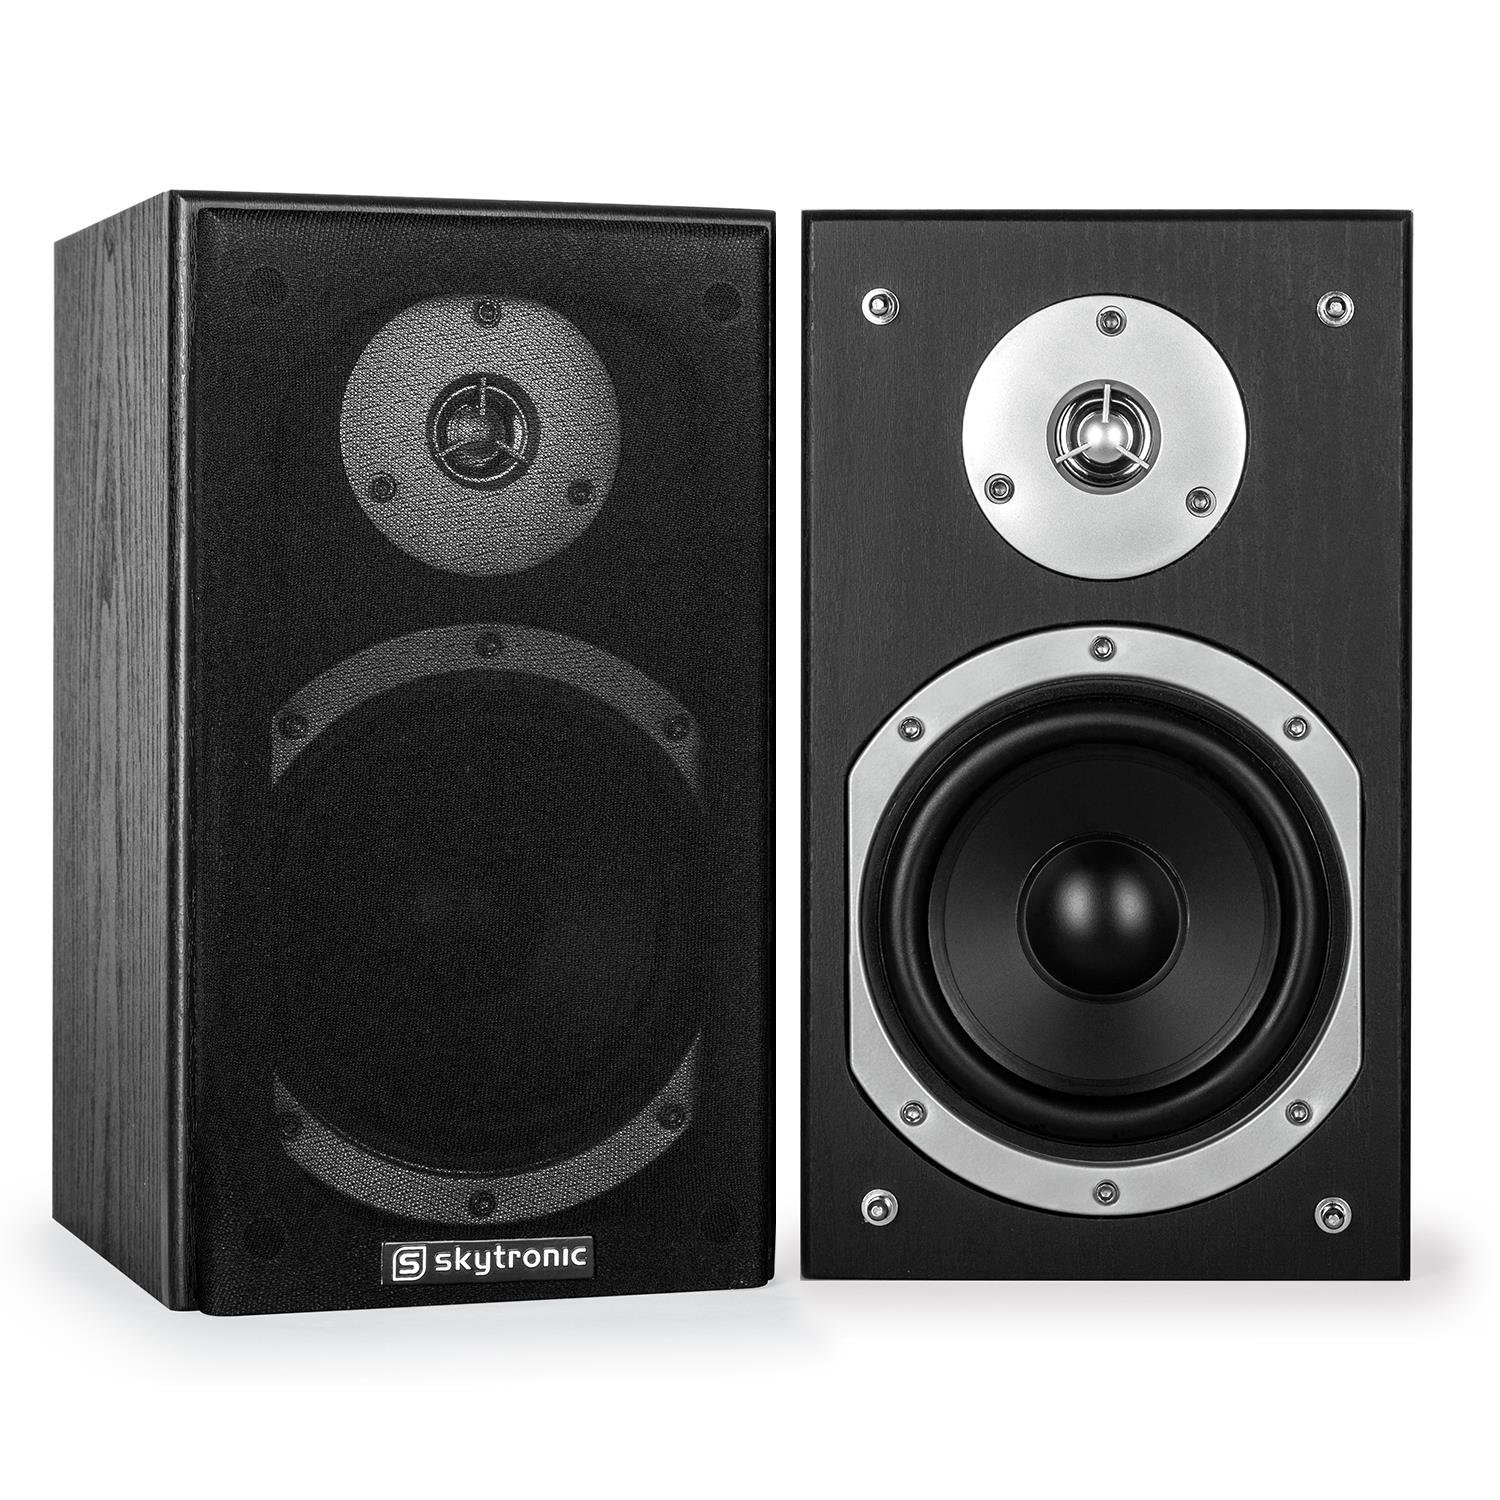 Fenton SHFB55B - Altavoces (Mesa/estante, Speaker set unit, Alámbrico, Terminal, 20: Amazon.es: Electrónica